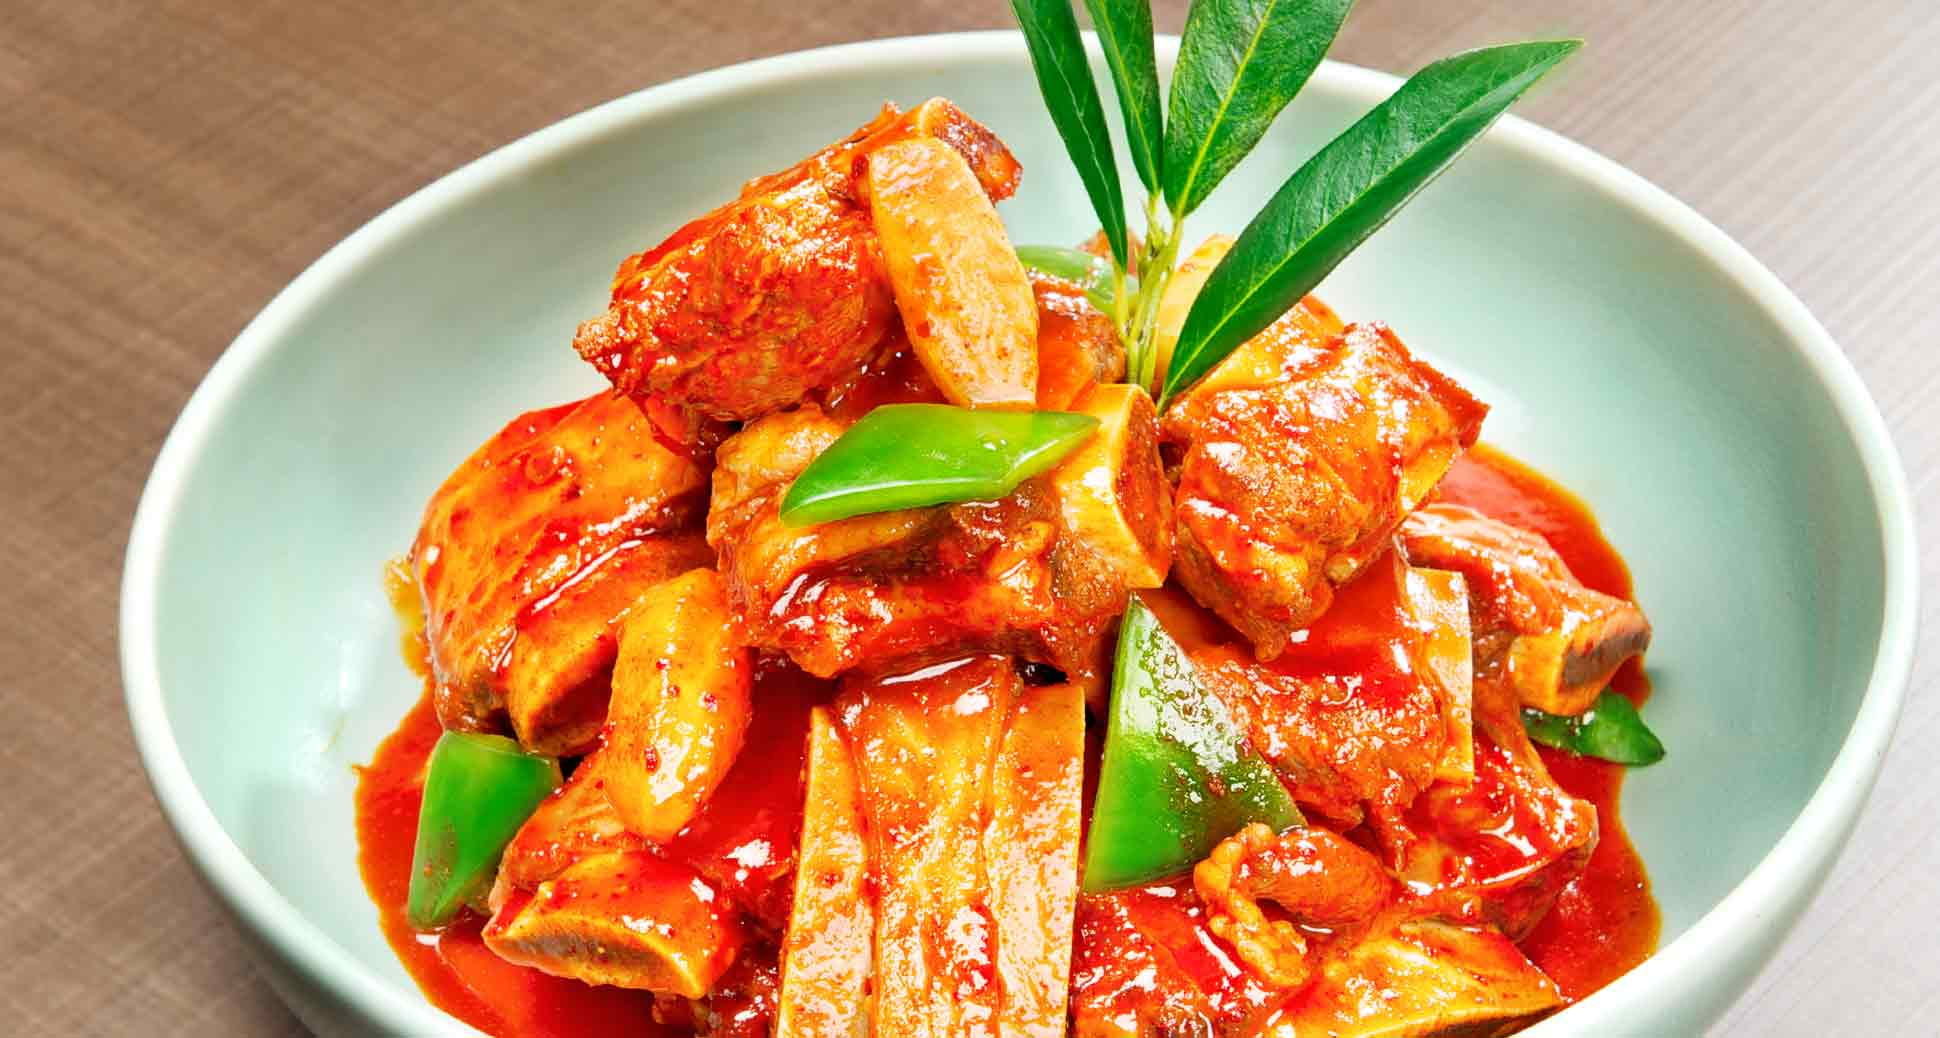 Sweating out to actually cool down: spicy galbi–jjim